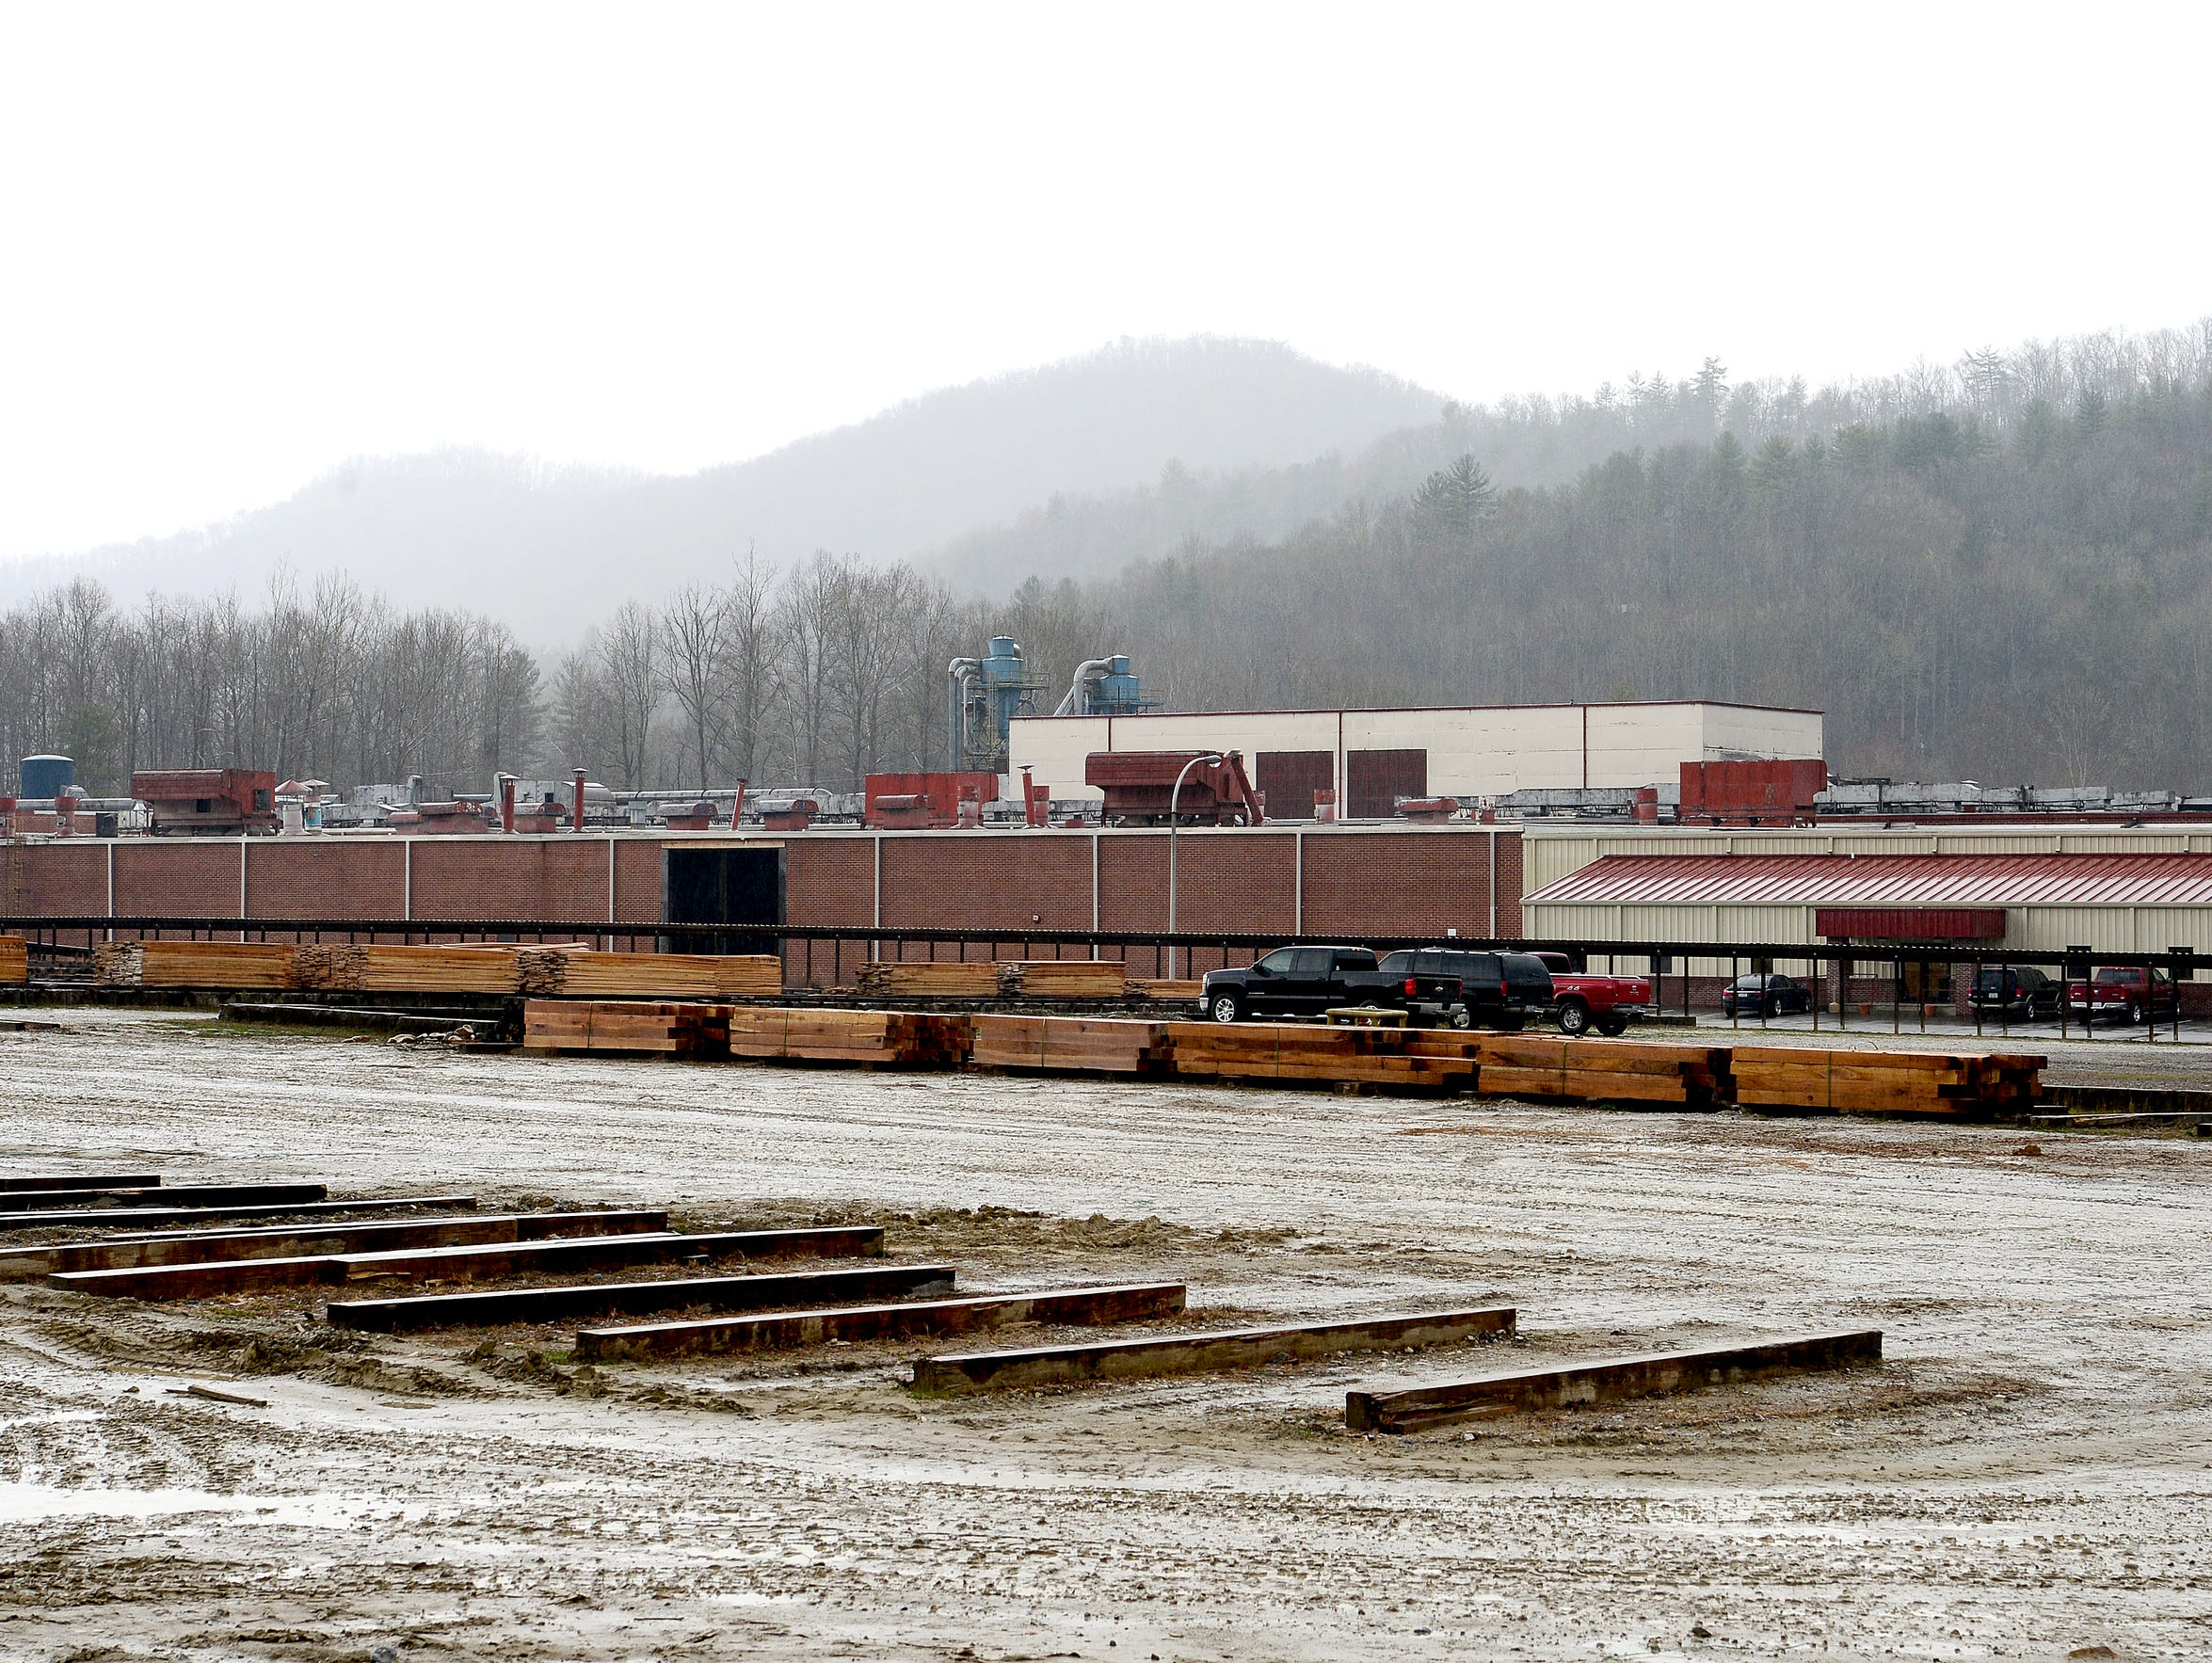 The Stanley Furniture plant in Robbinsville was once